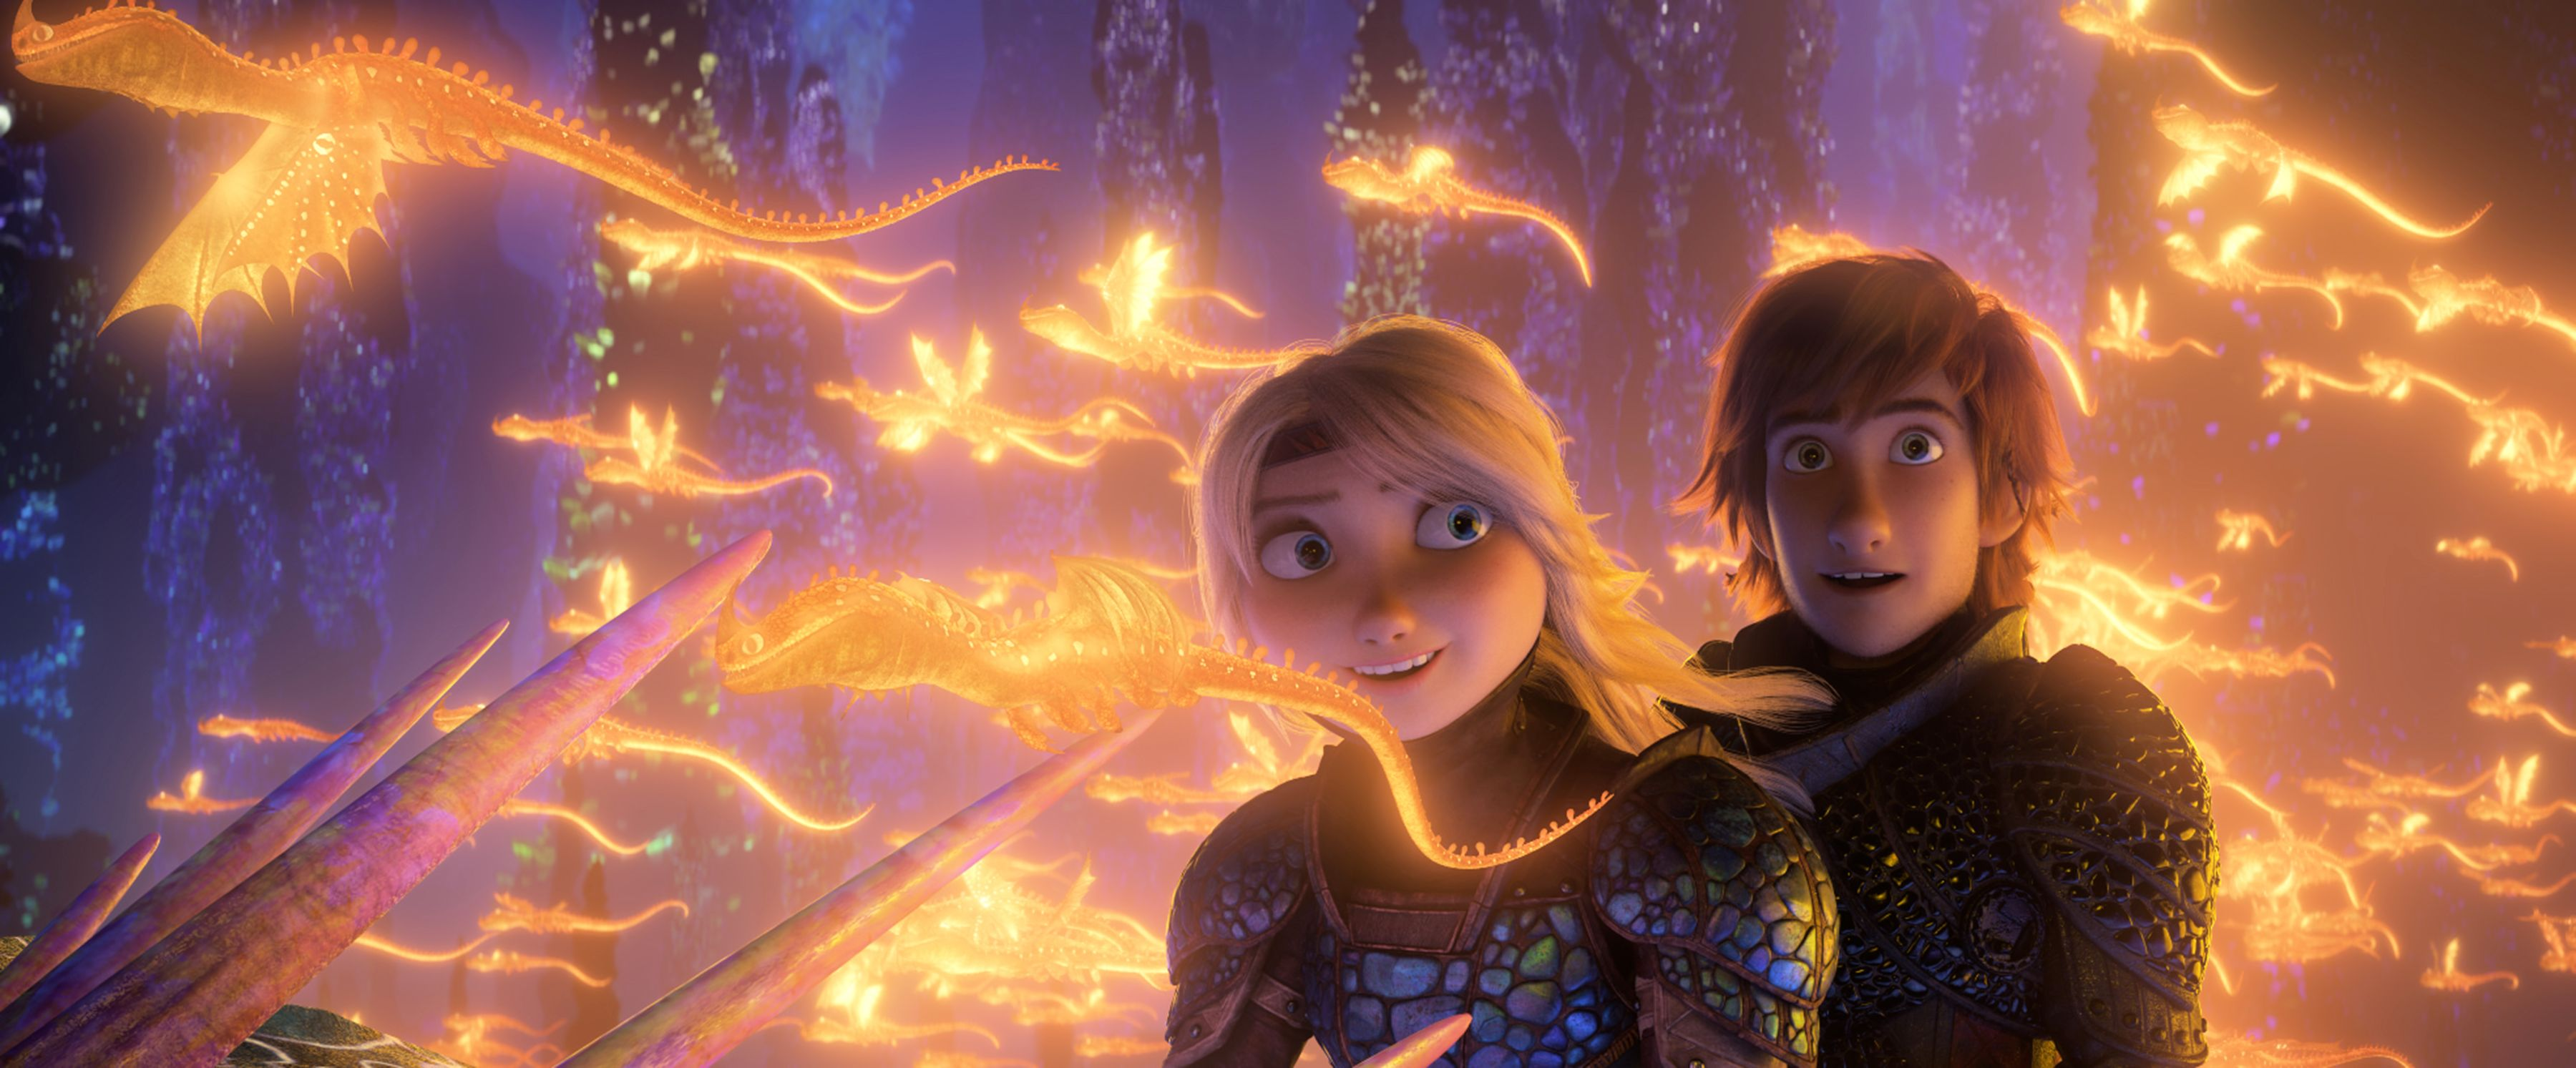 download movie how to train your dragon